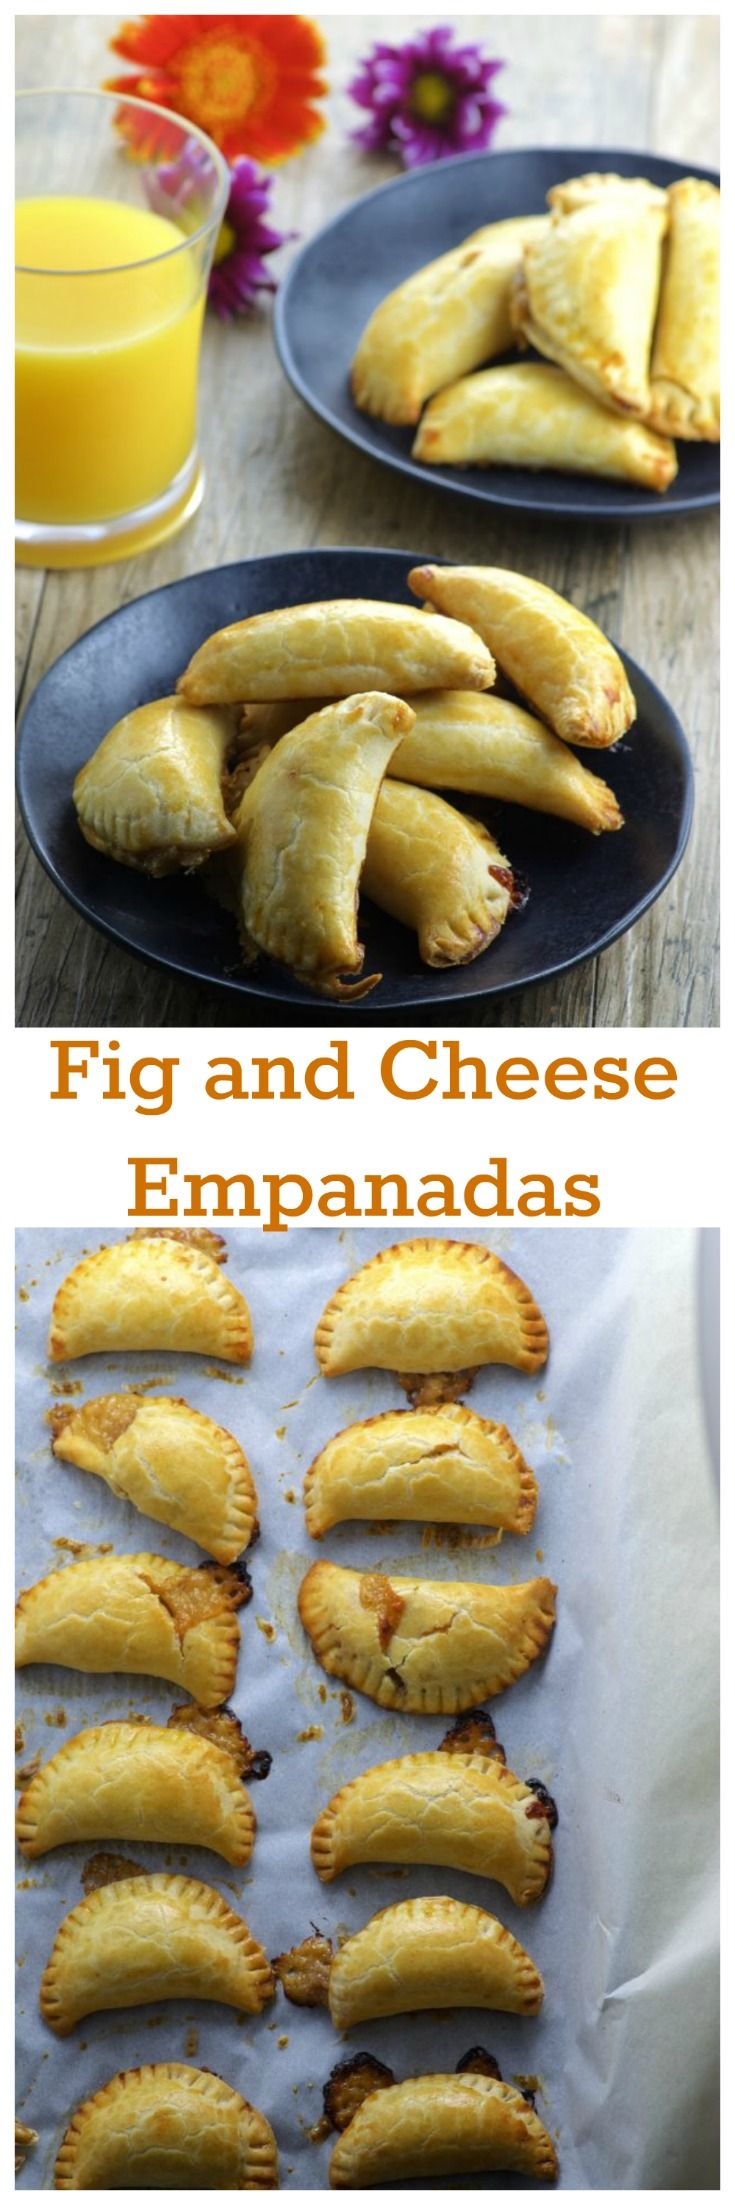 Fig and Cheese Empanadas : heavenly sweet and savory combination.